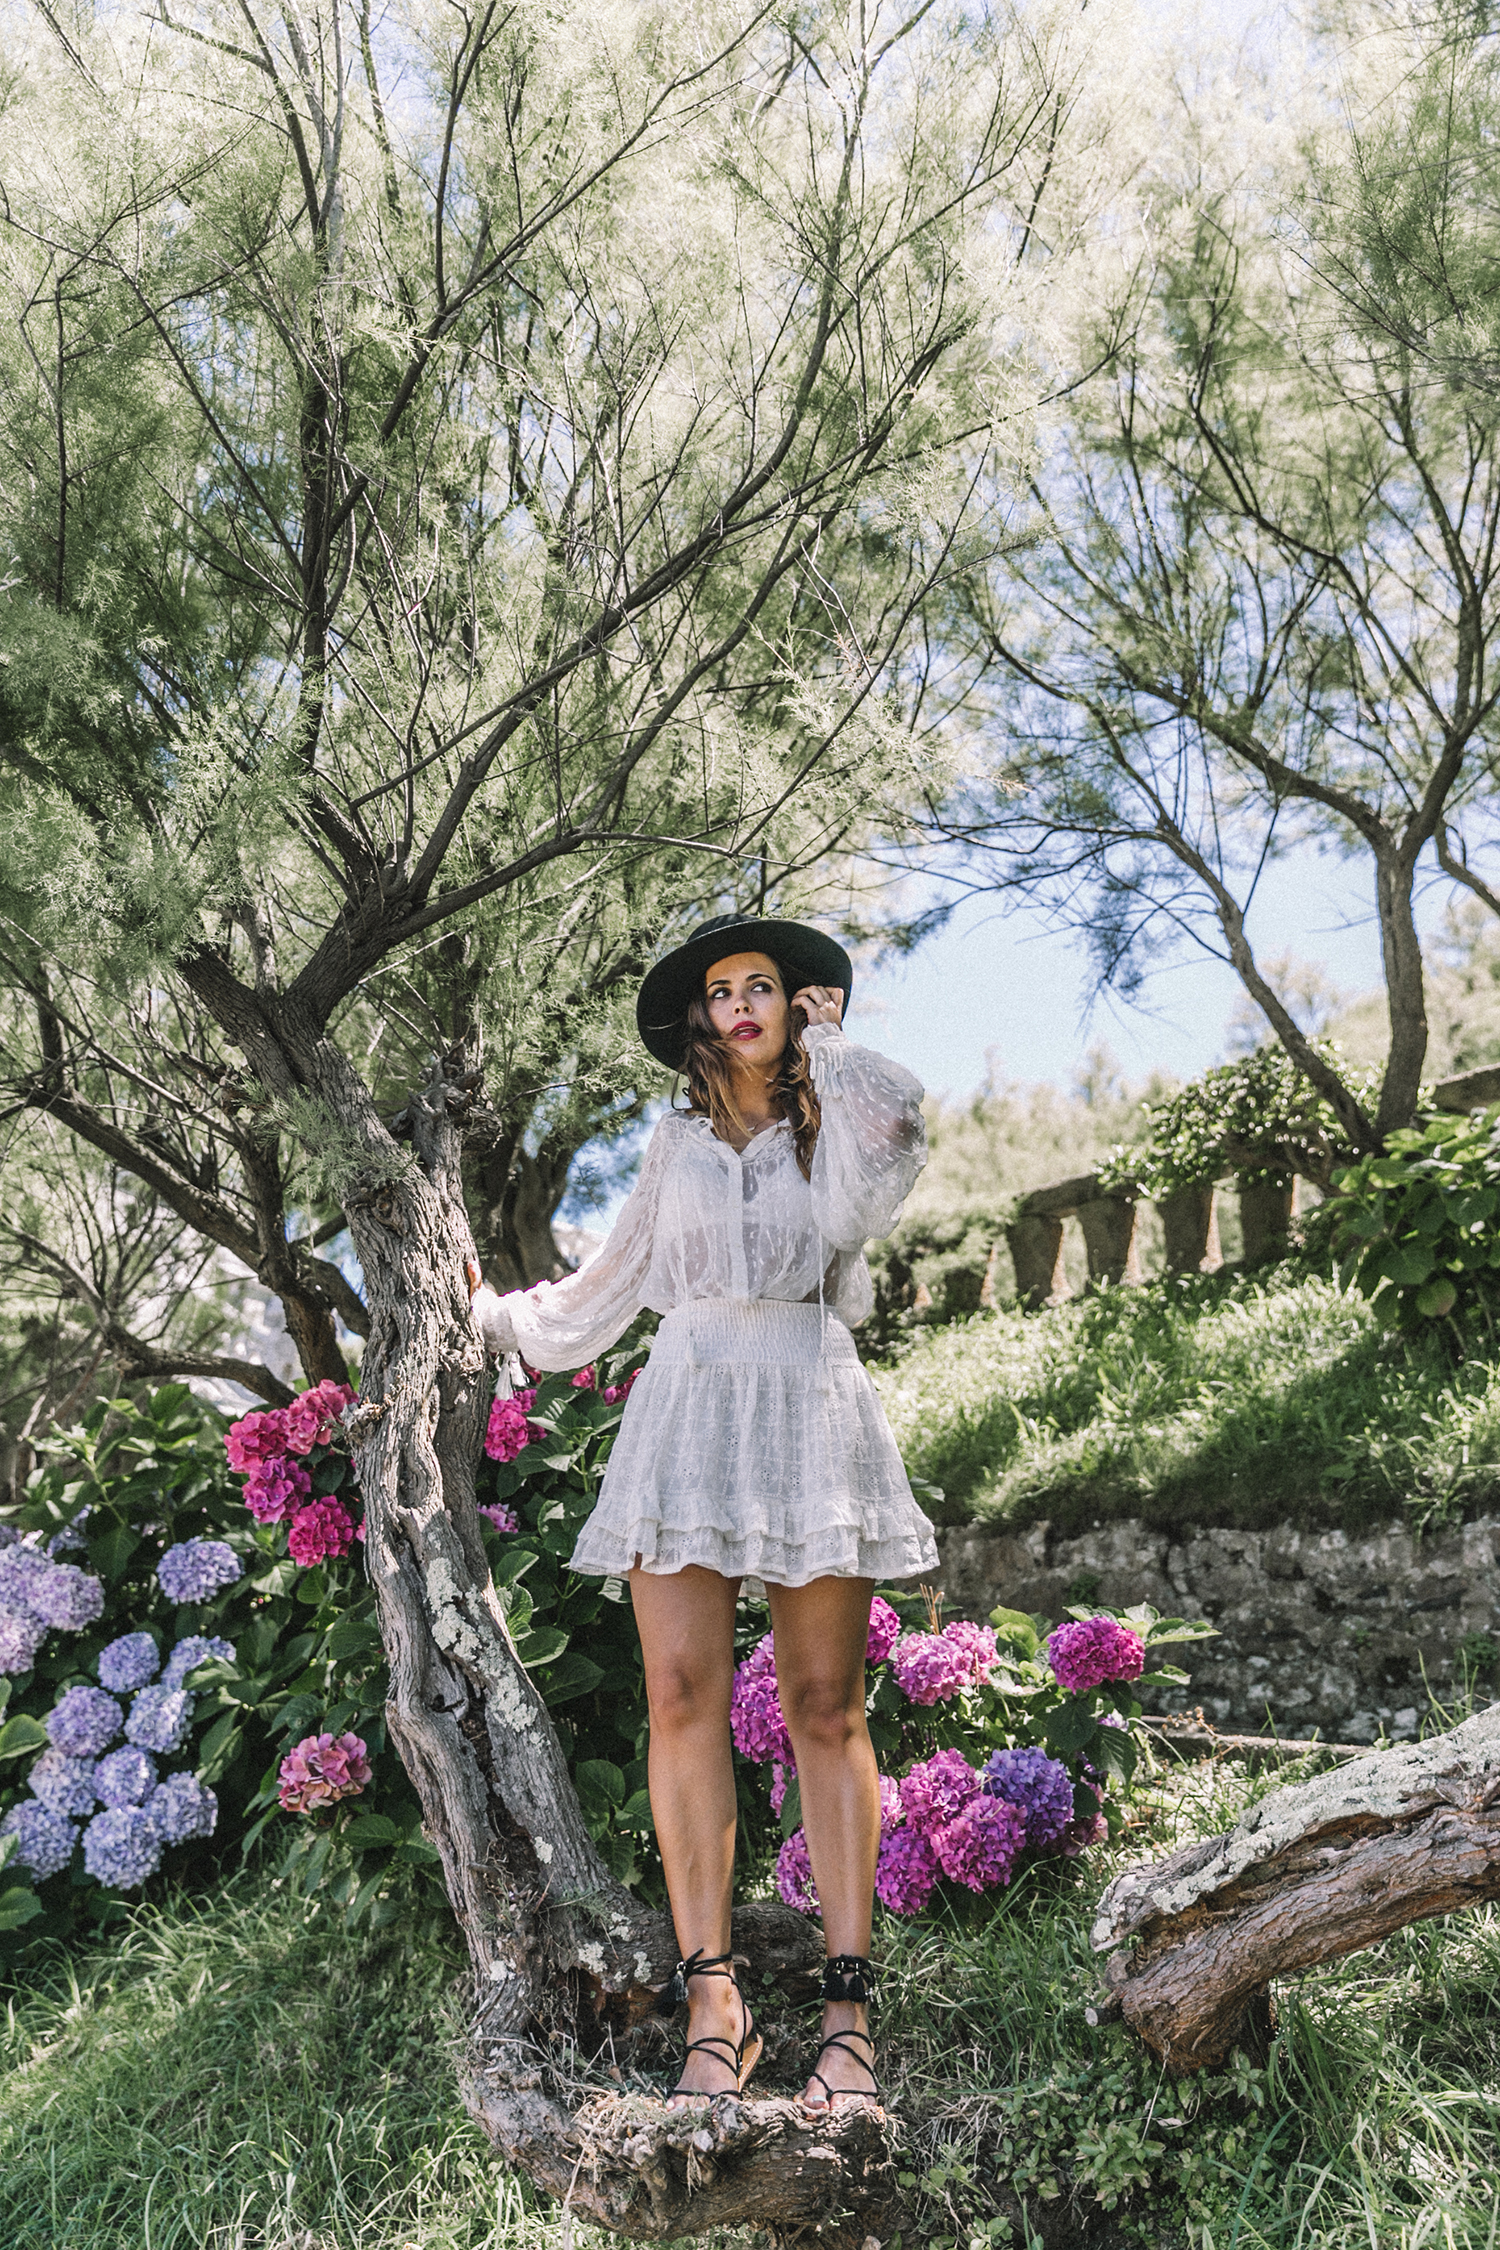 White_Outfit-Denim_Jacket-Lack_Of_Color_Hat-Outfit-Biarritz-Levis-Live_In_Levis-Street_Style-Summer-Boho_Skirt-Collage_Vintage-38